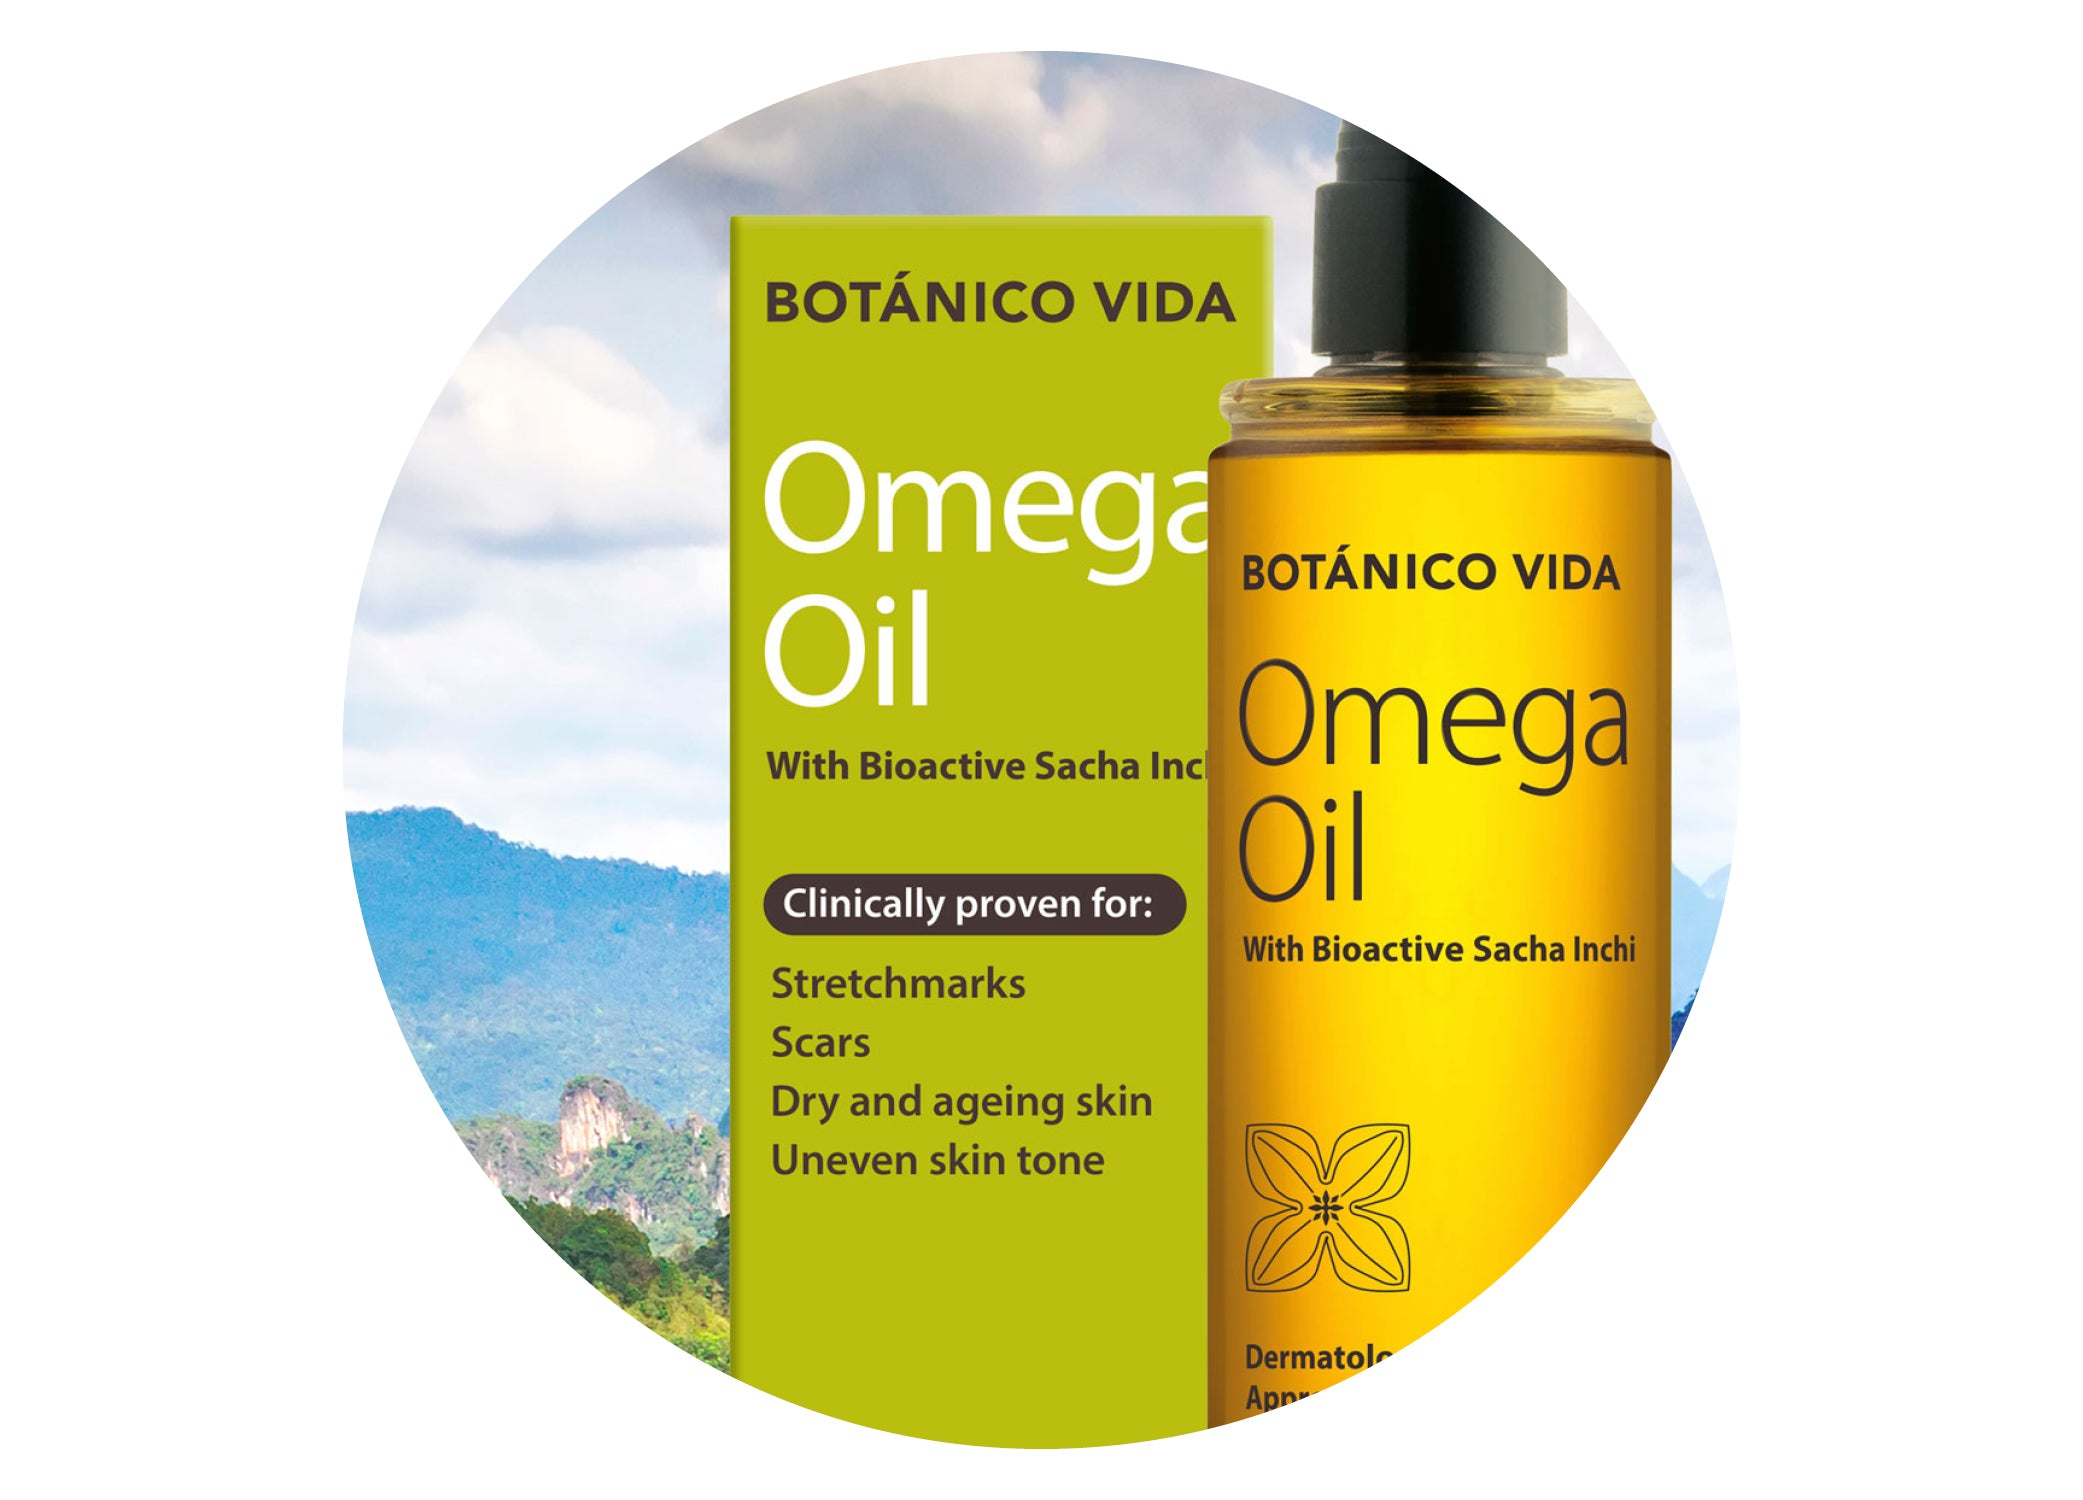 Botanico Vida Omega Oil with Sachi Inchi. Sustainable skincare for the family.